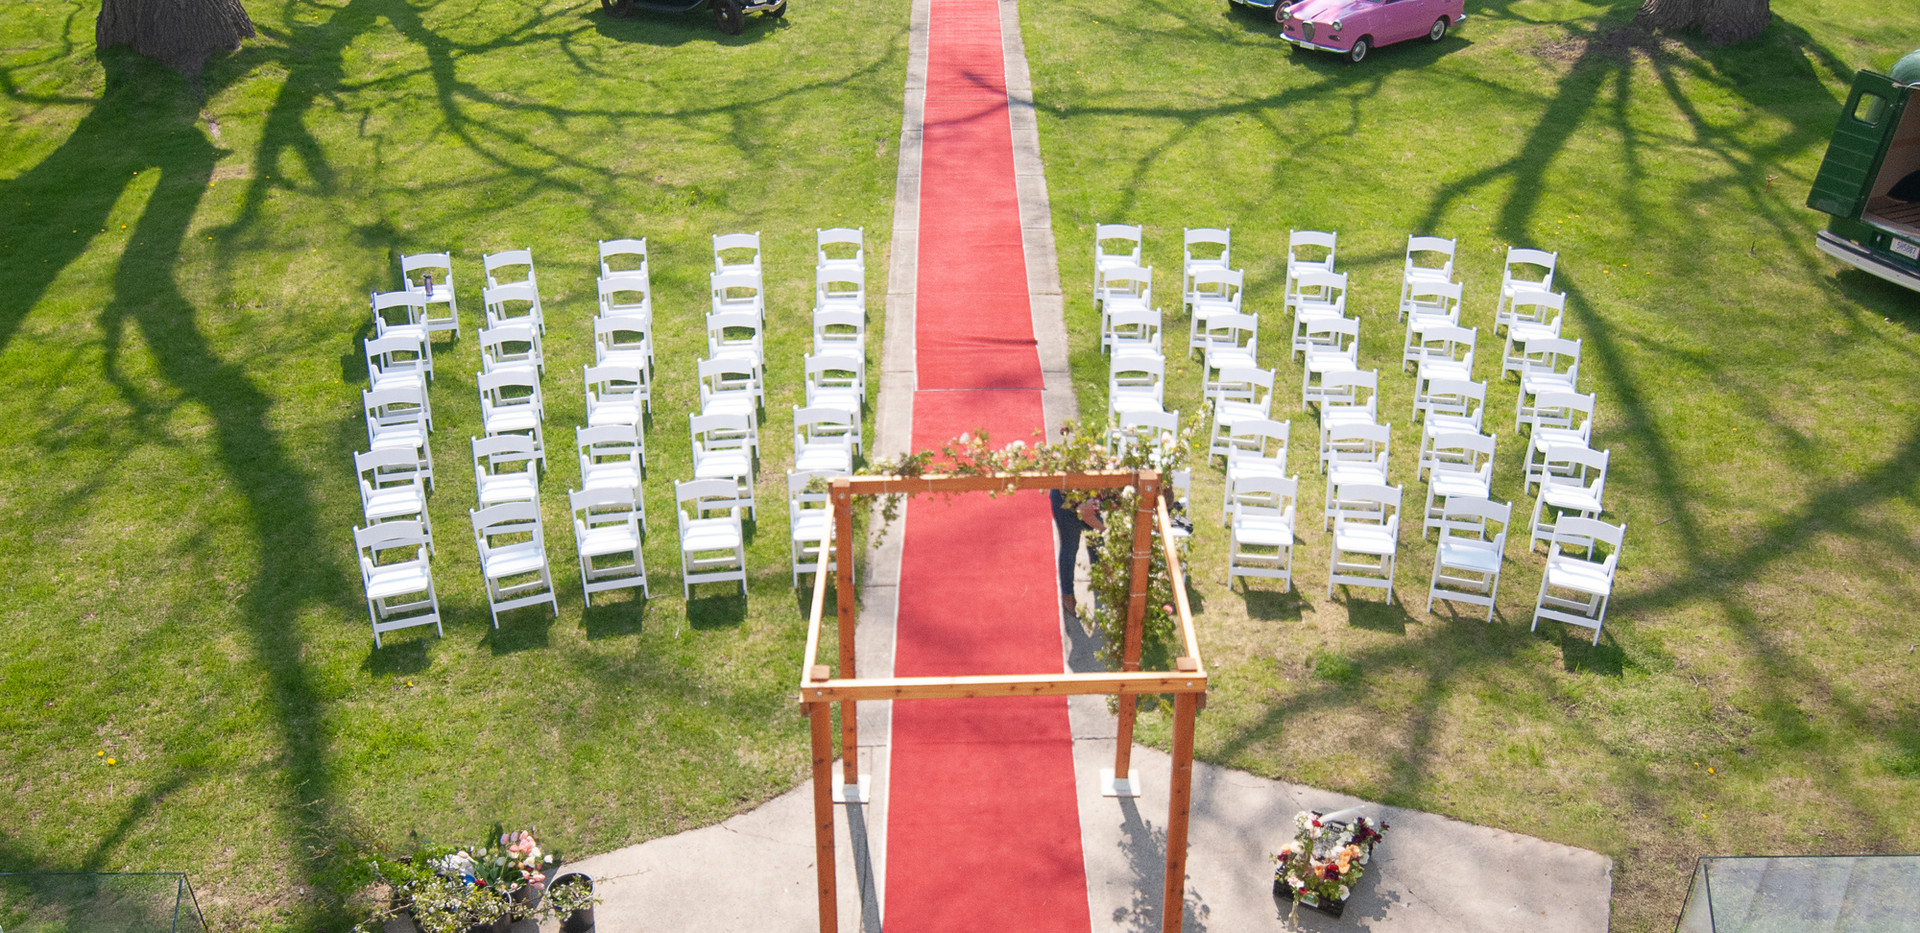 Mock Wedding Day Set-Up at Grand Opening Event